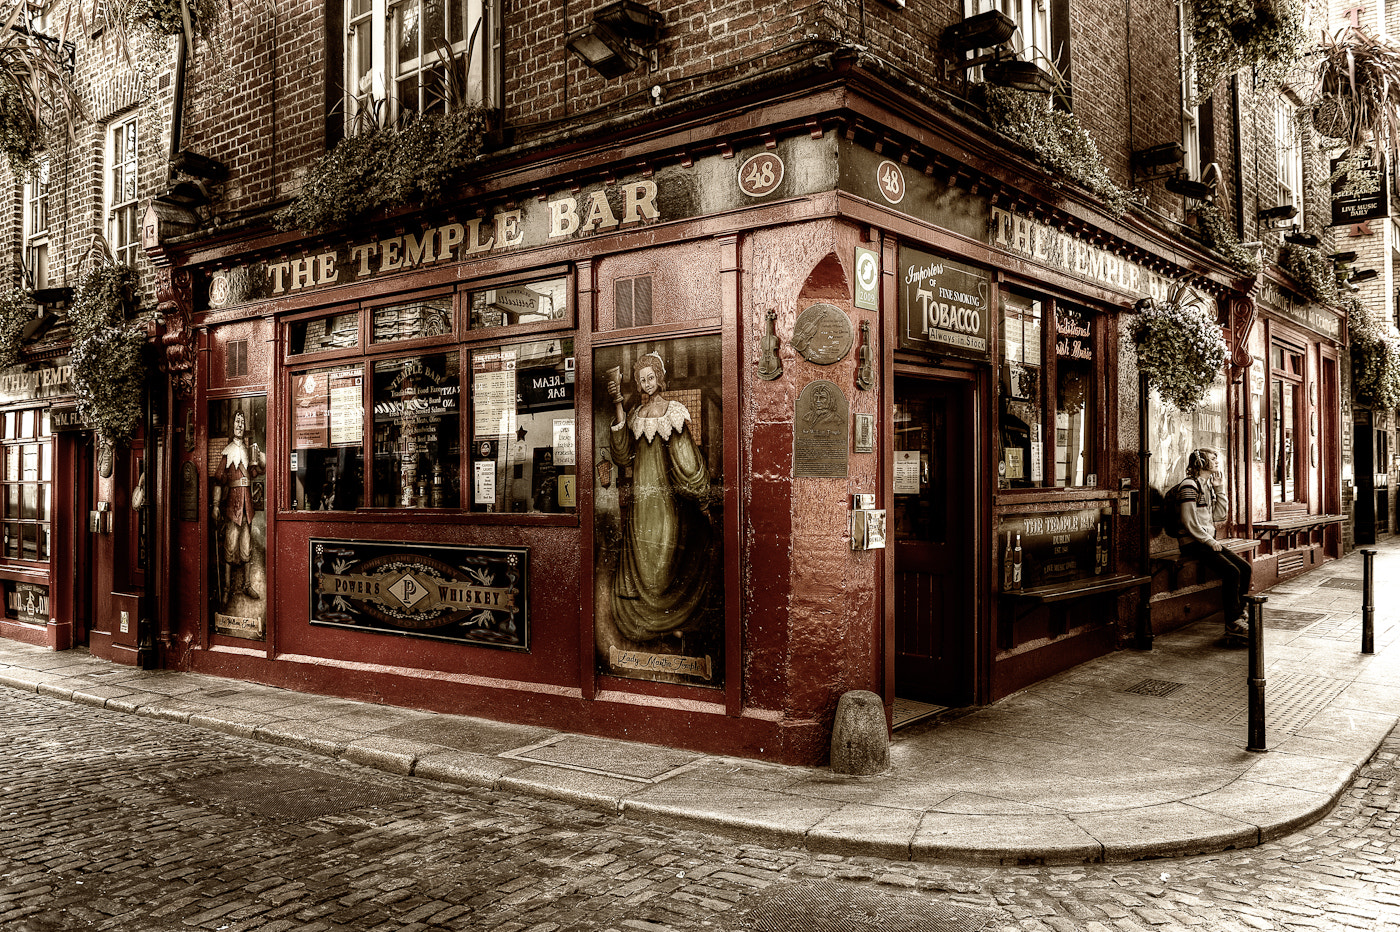 Photograph The Temple Bar by Dominik Staszowski on 500px